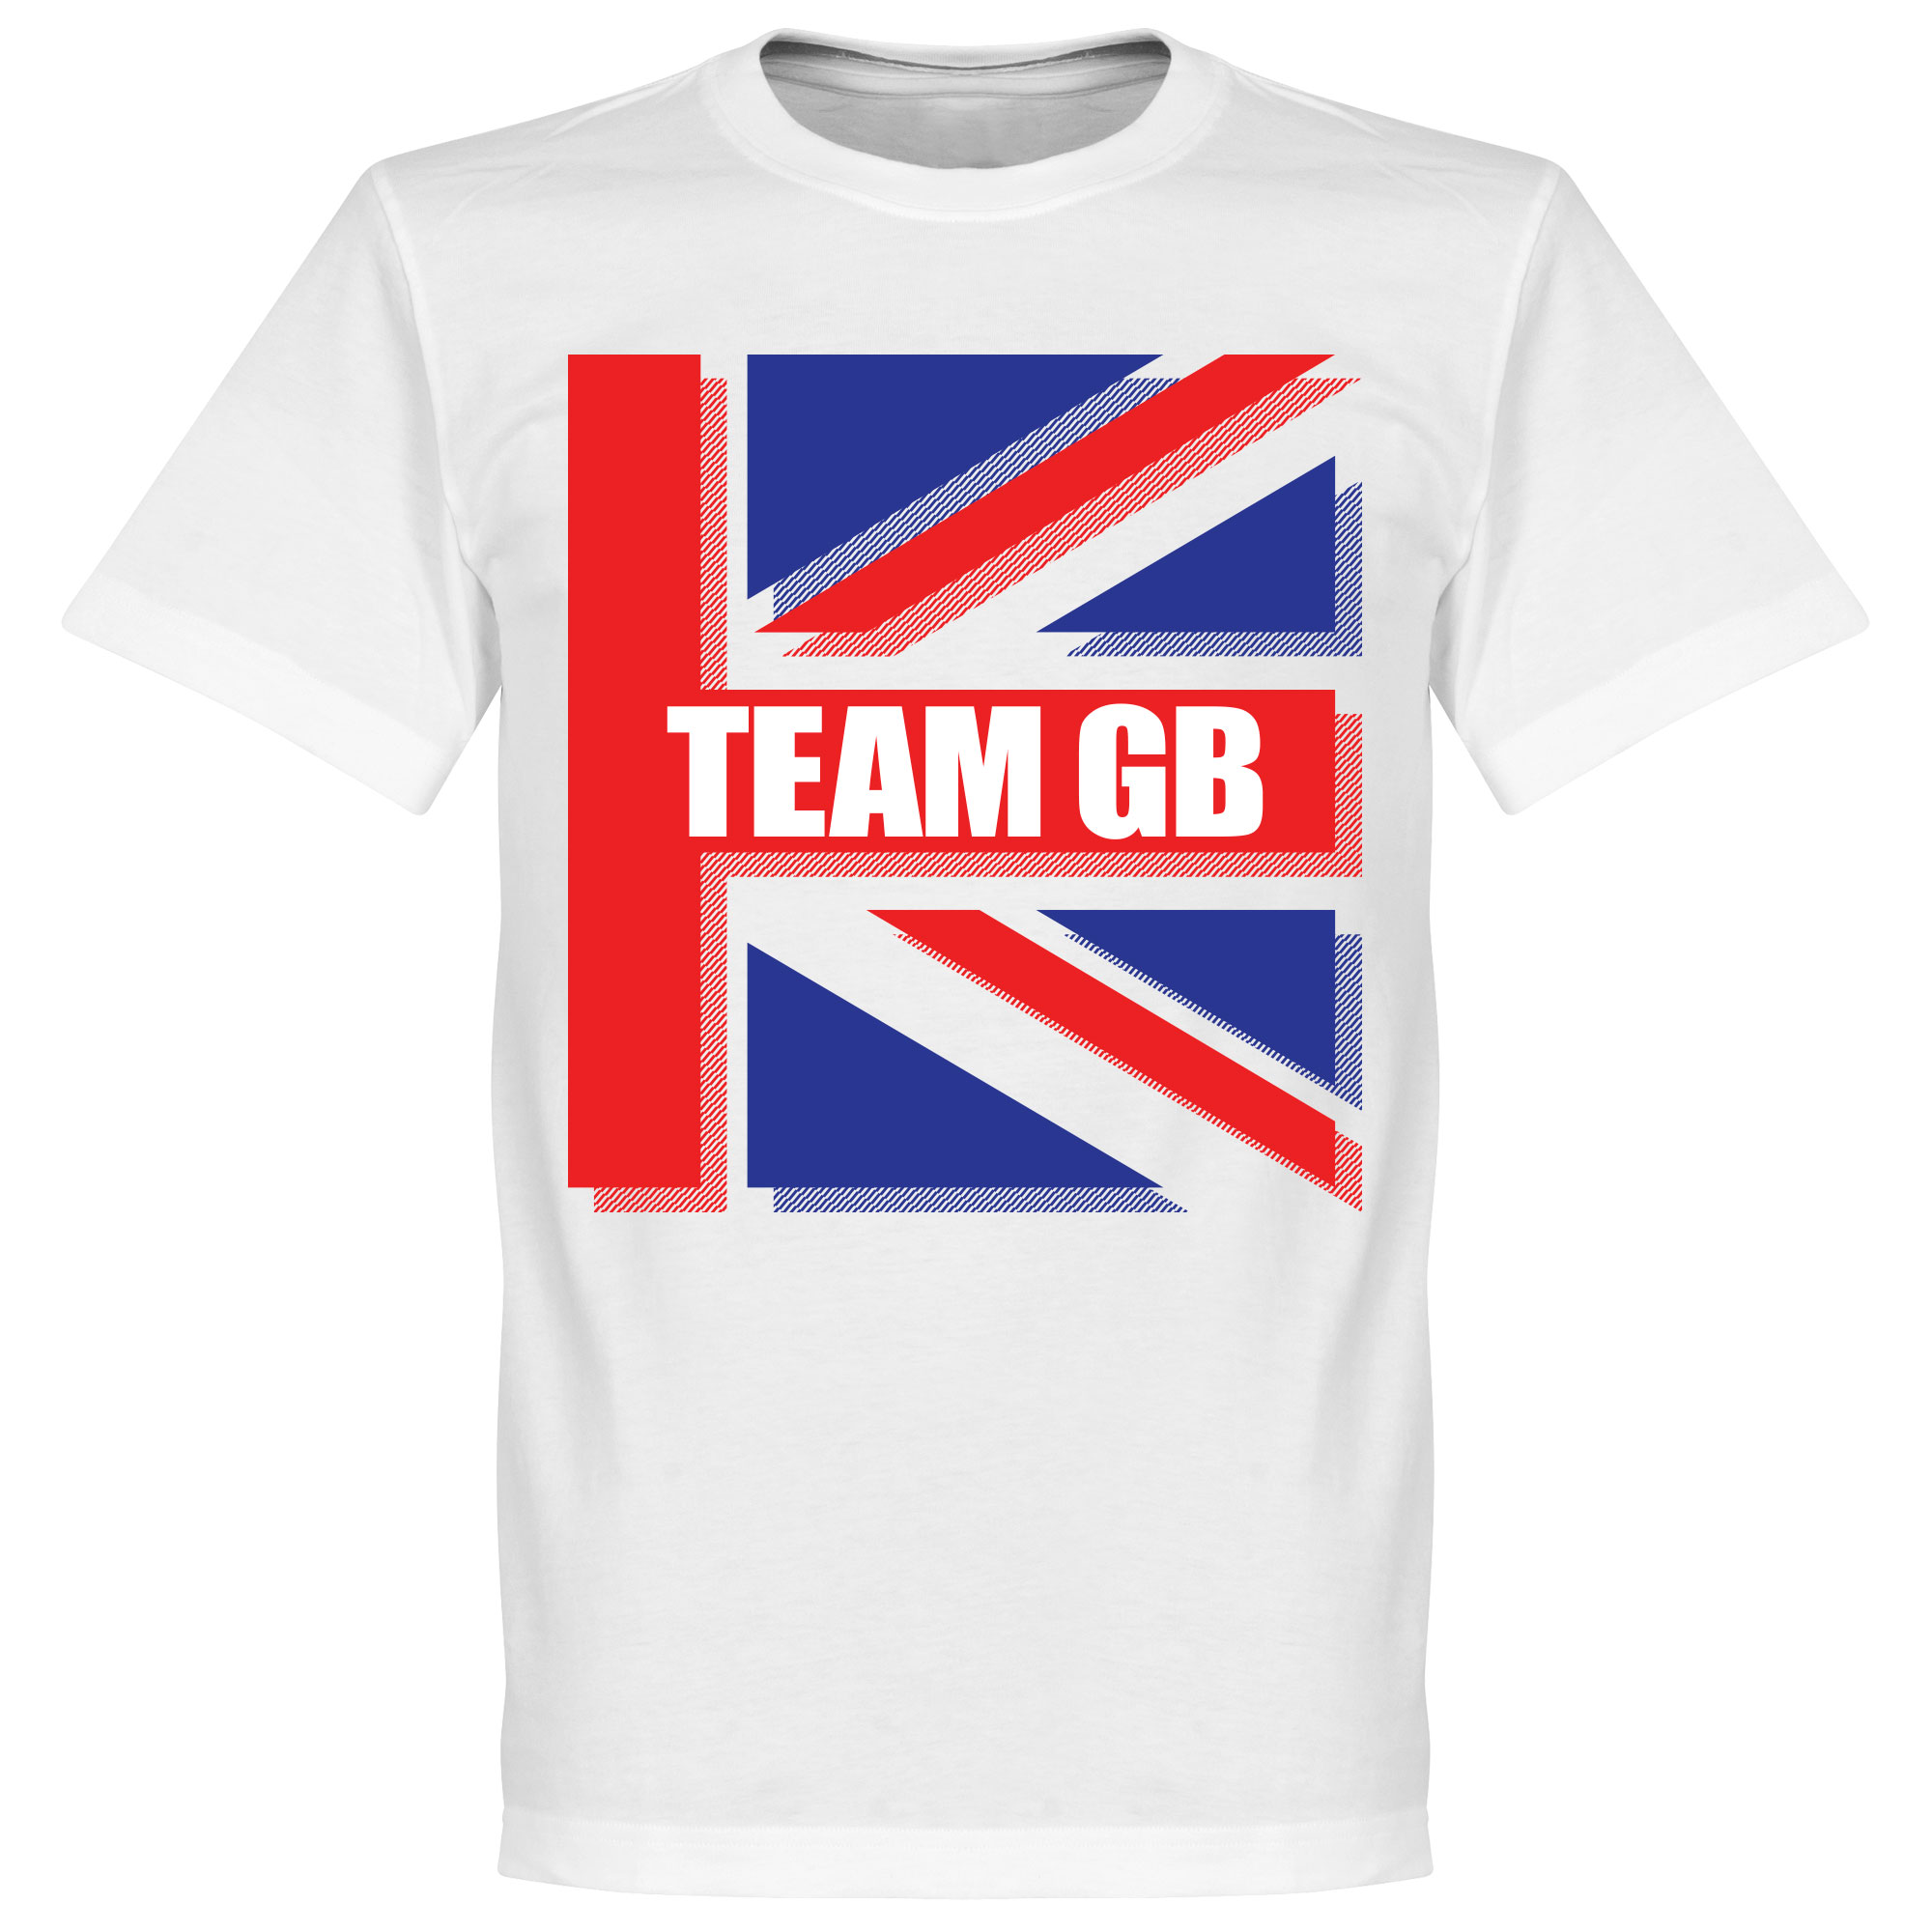 Team GB Tee - White - S